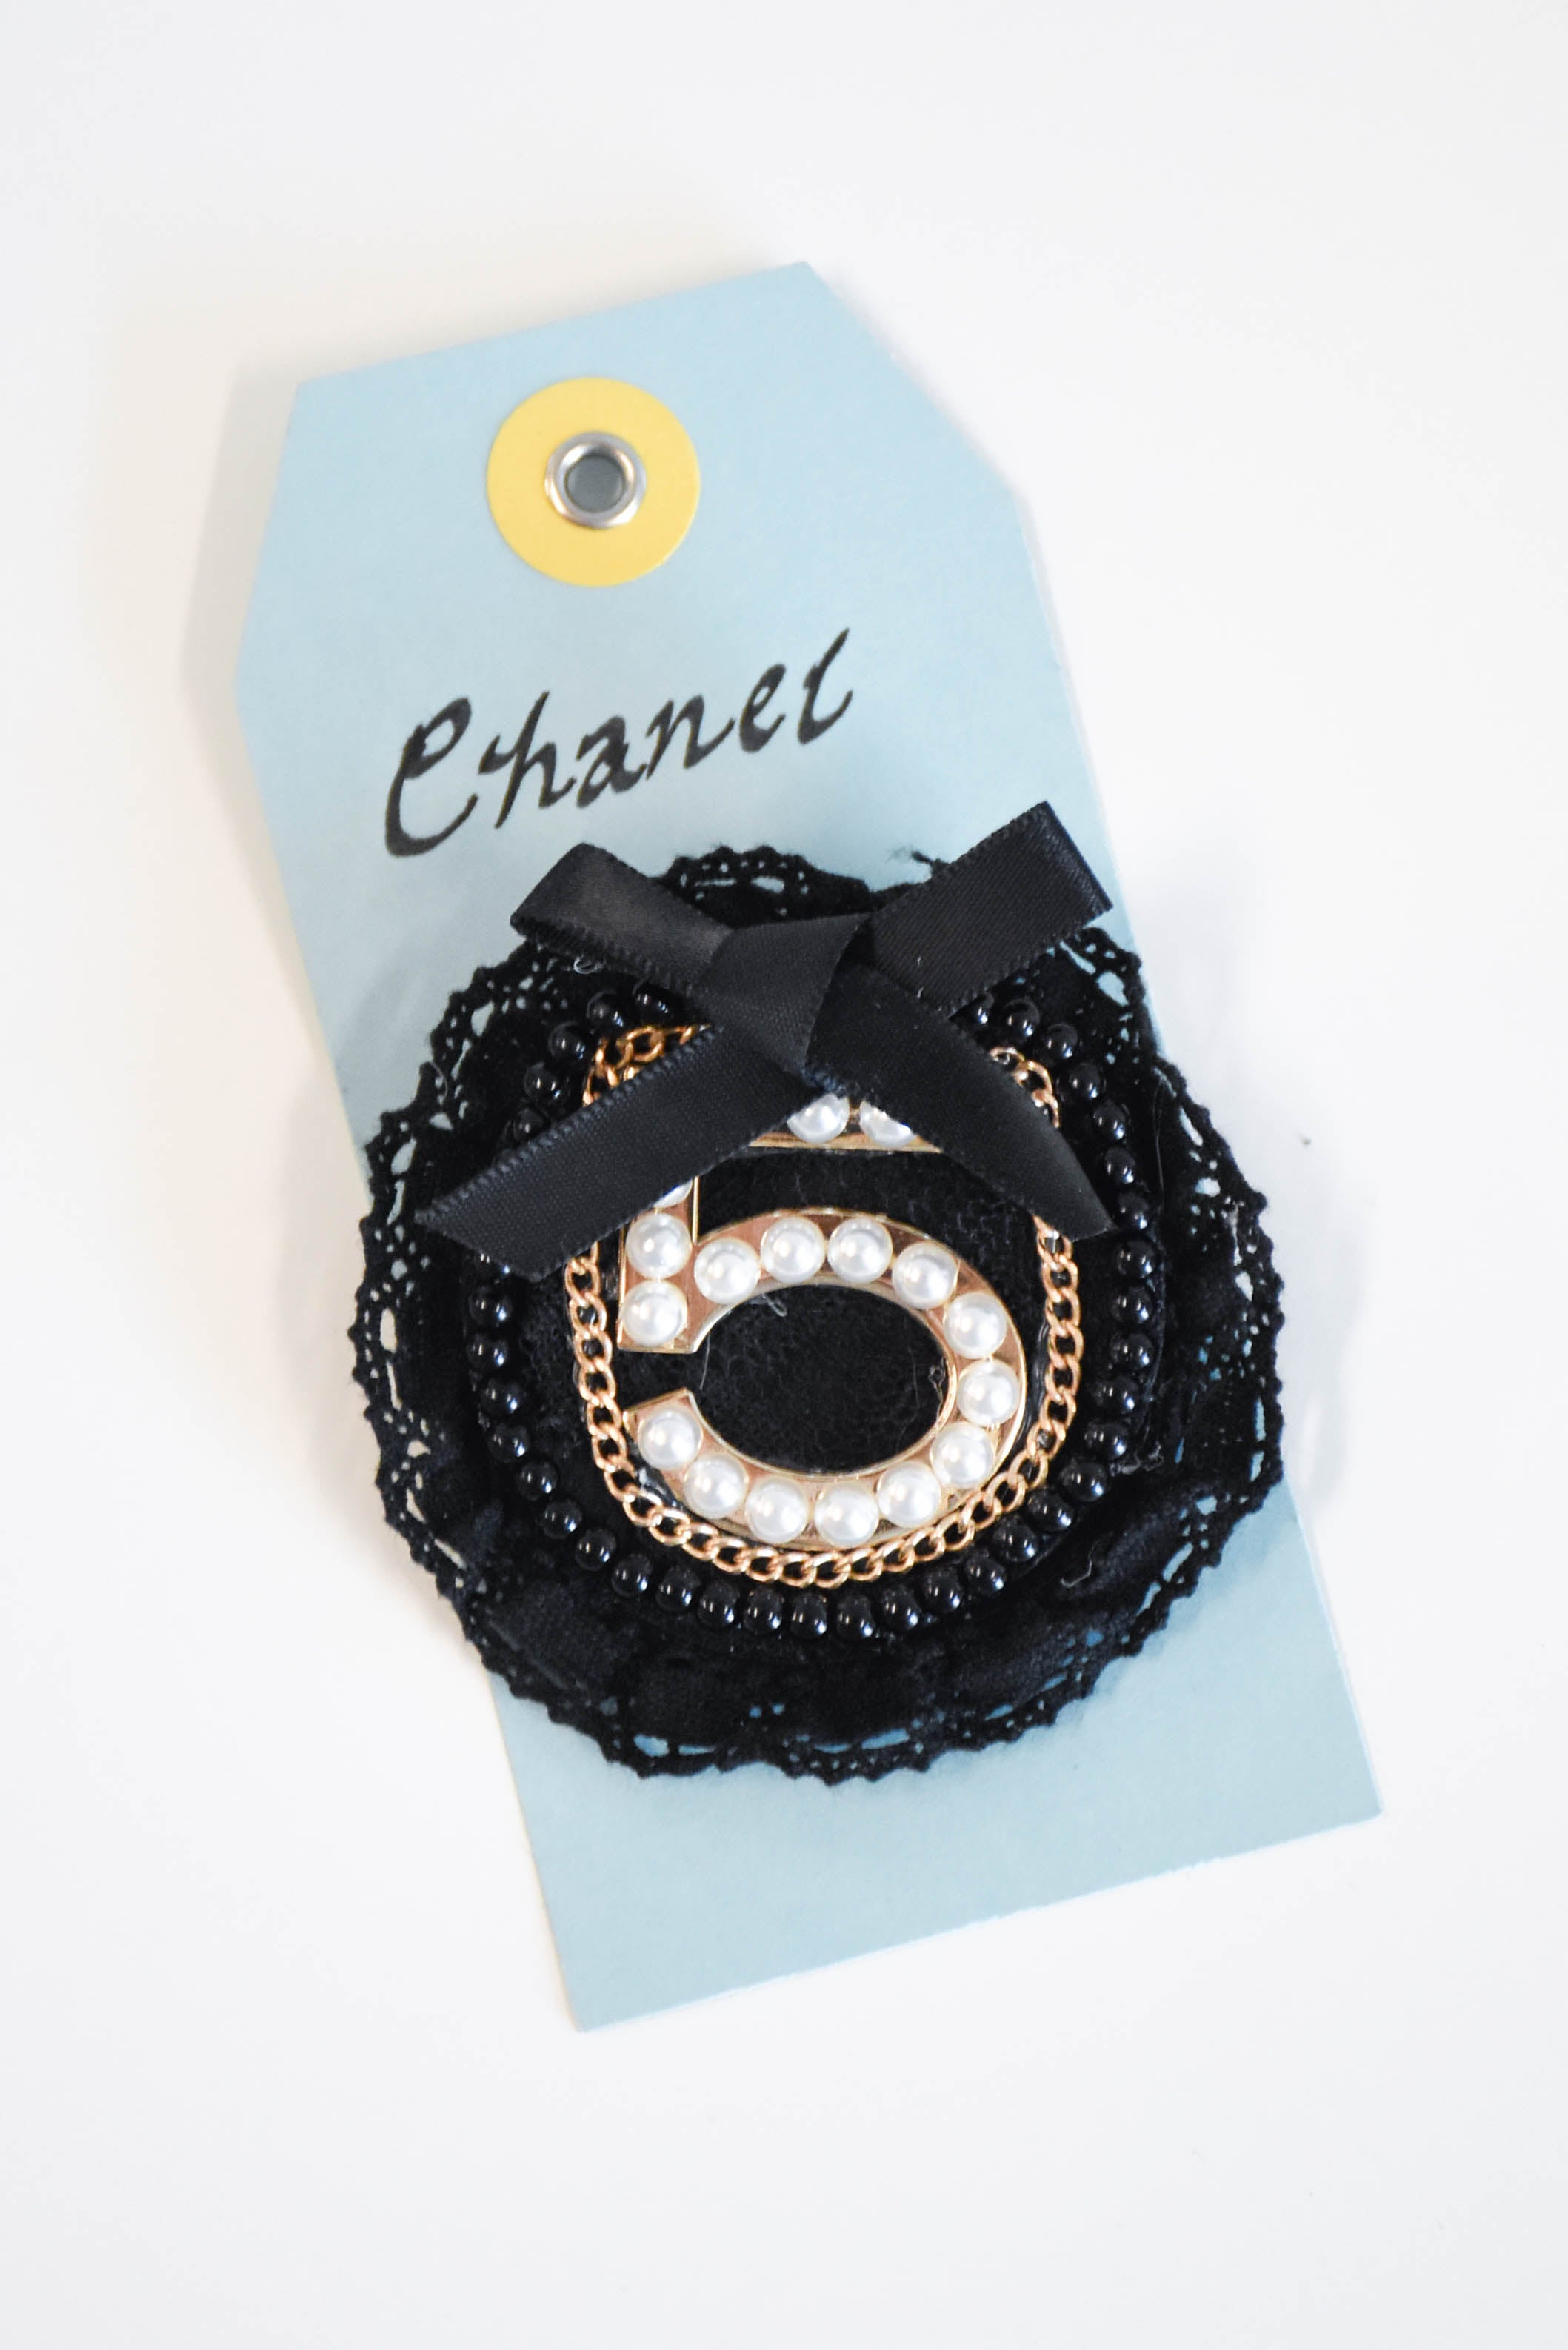 Social Butterflies Patch Pin (Chanel)